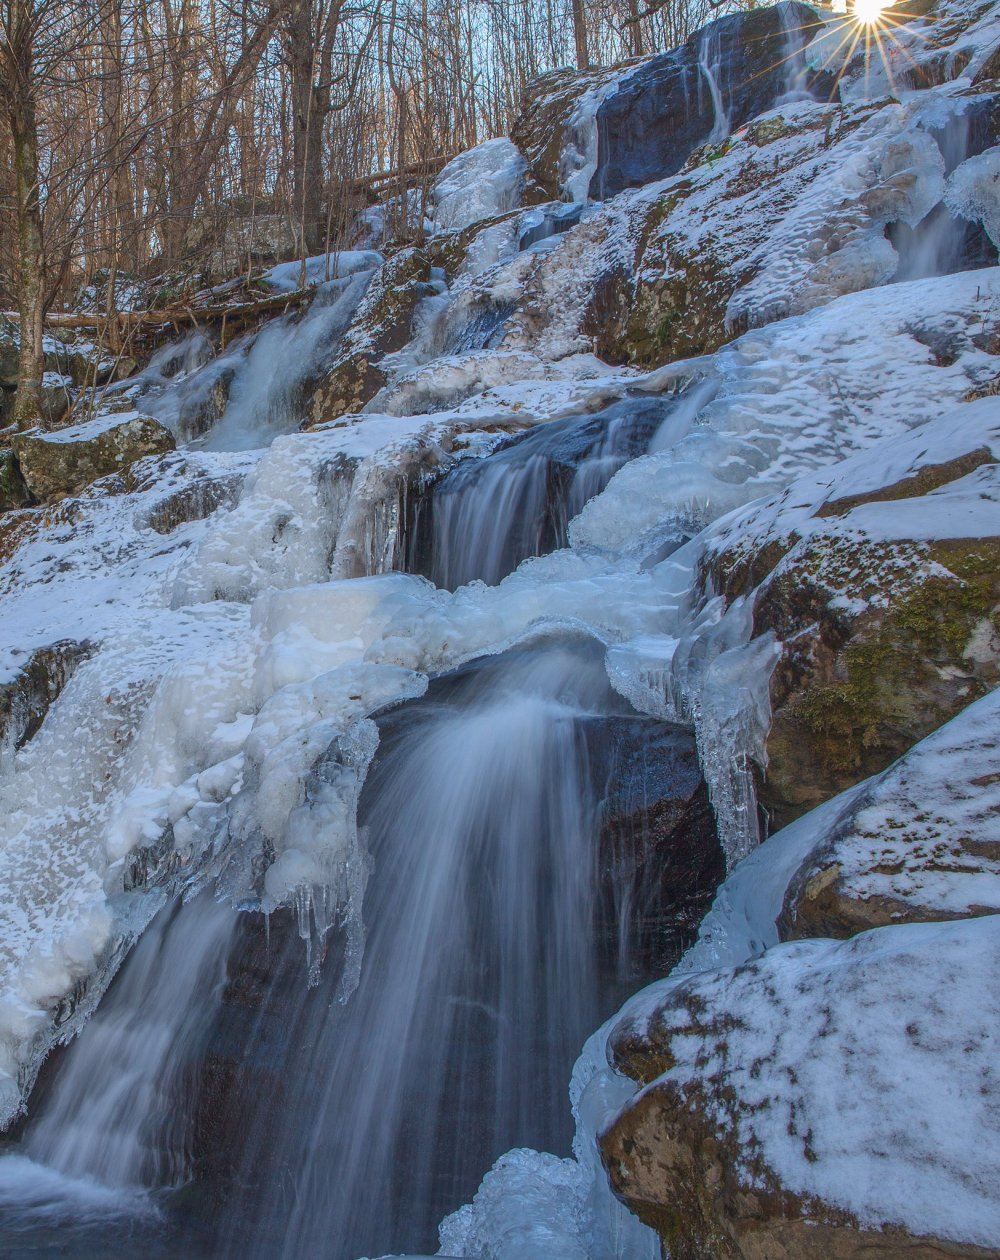 Frozen winter waterfalls transform Shenandoah National Park. Photo by Howard Wu. Tweeted by the US Department of the Interior, 1/6/17.